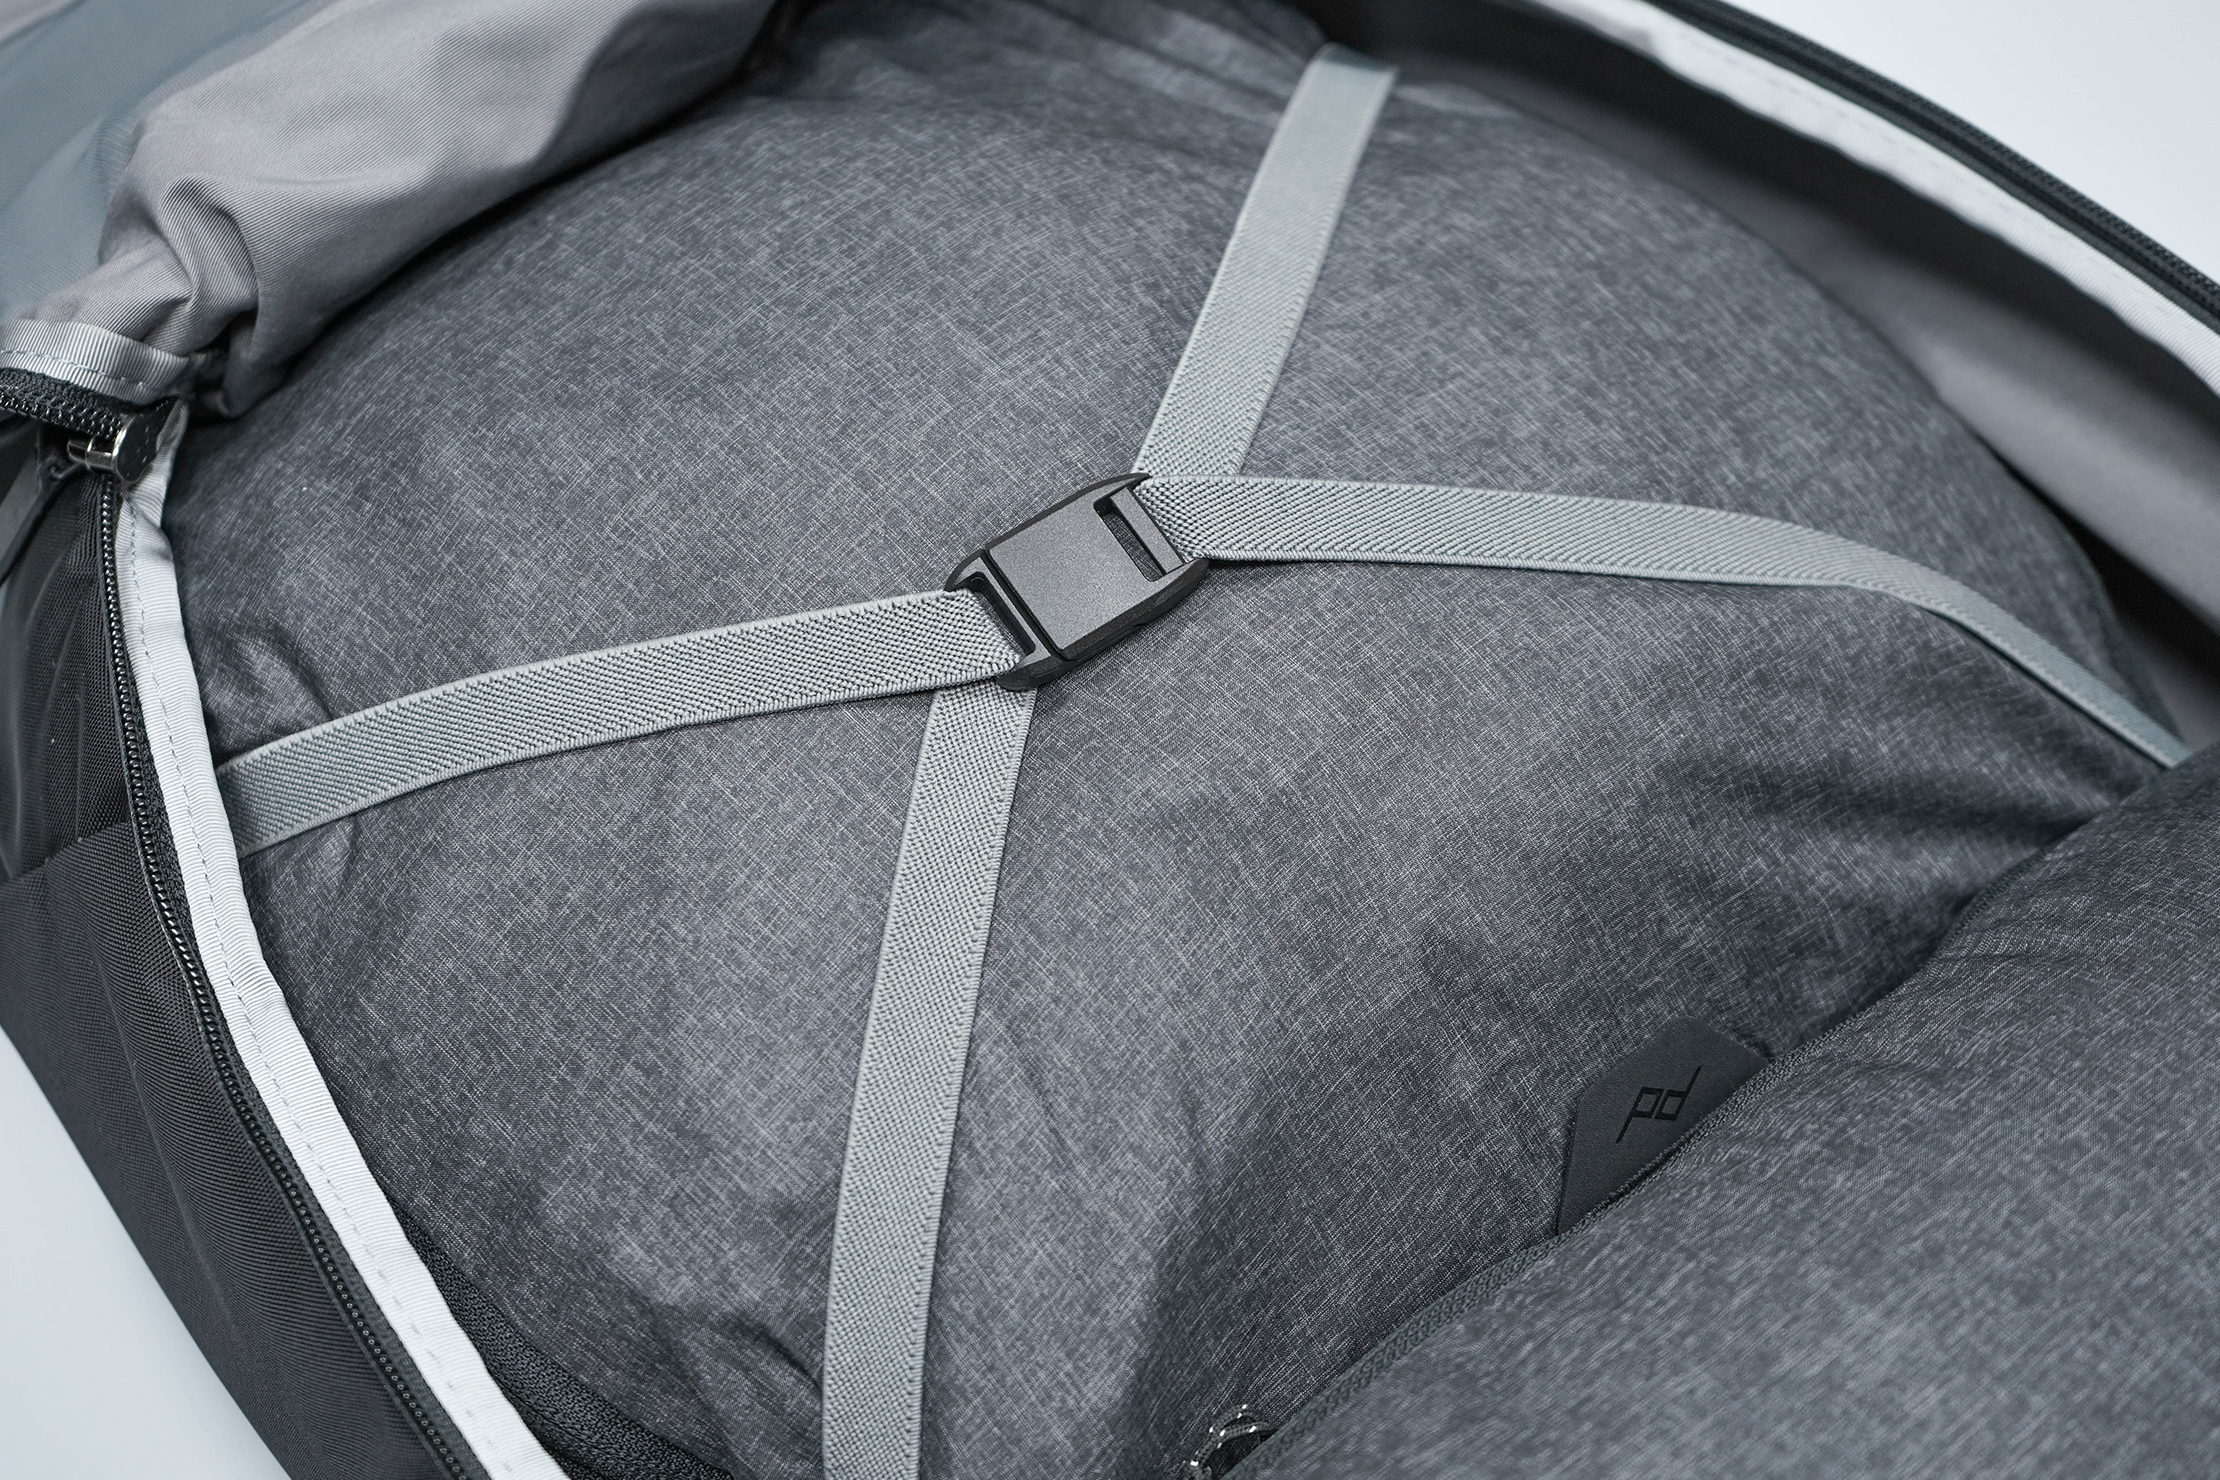 Bellroy Transit Backpack Internal Compression Strap